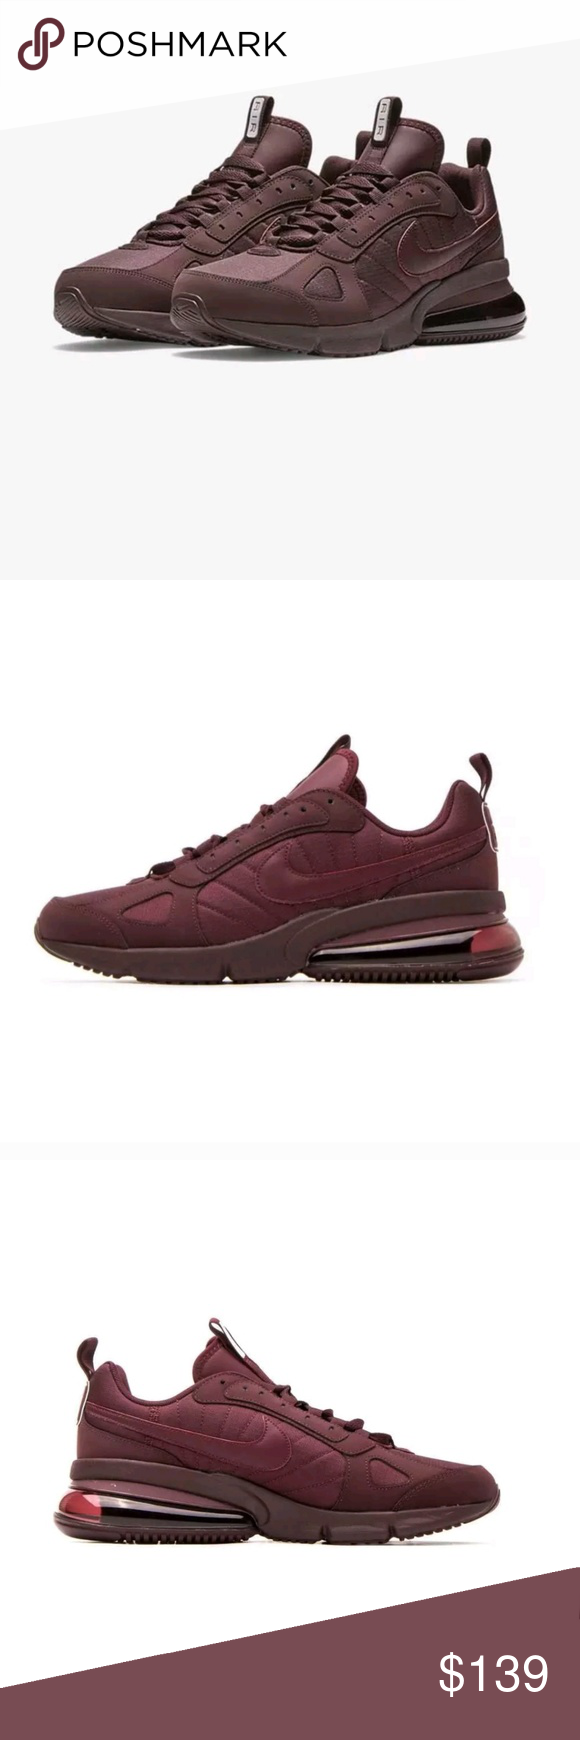 Nike Air Max 270 Futura Burgundy Crush New in box Nike Air